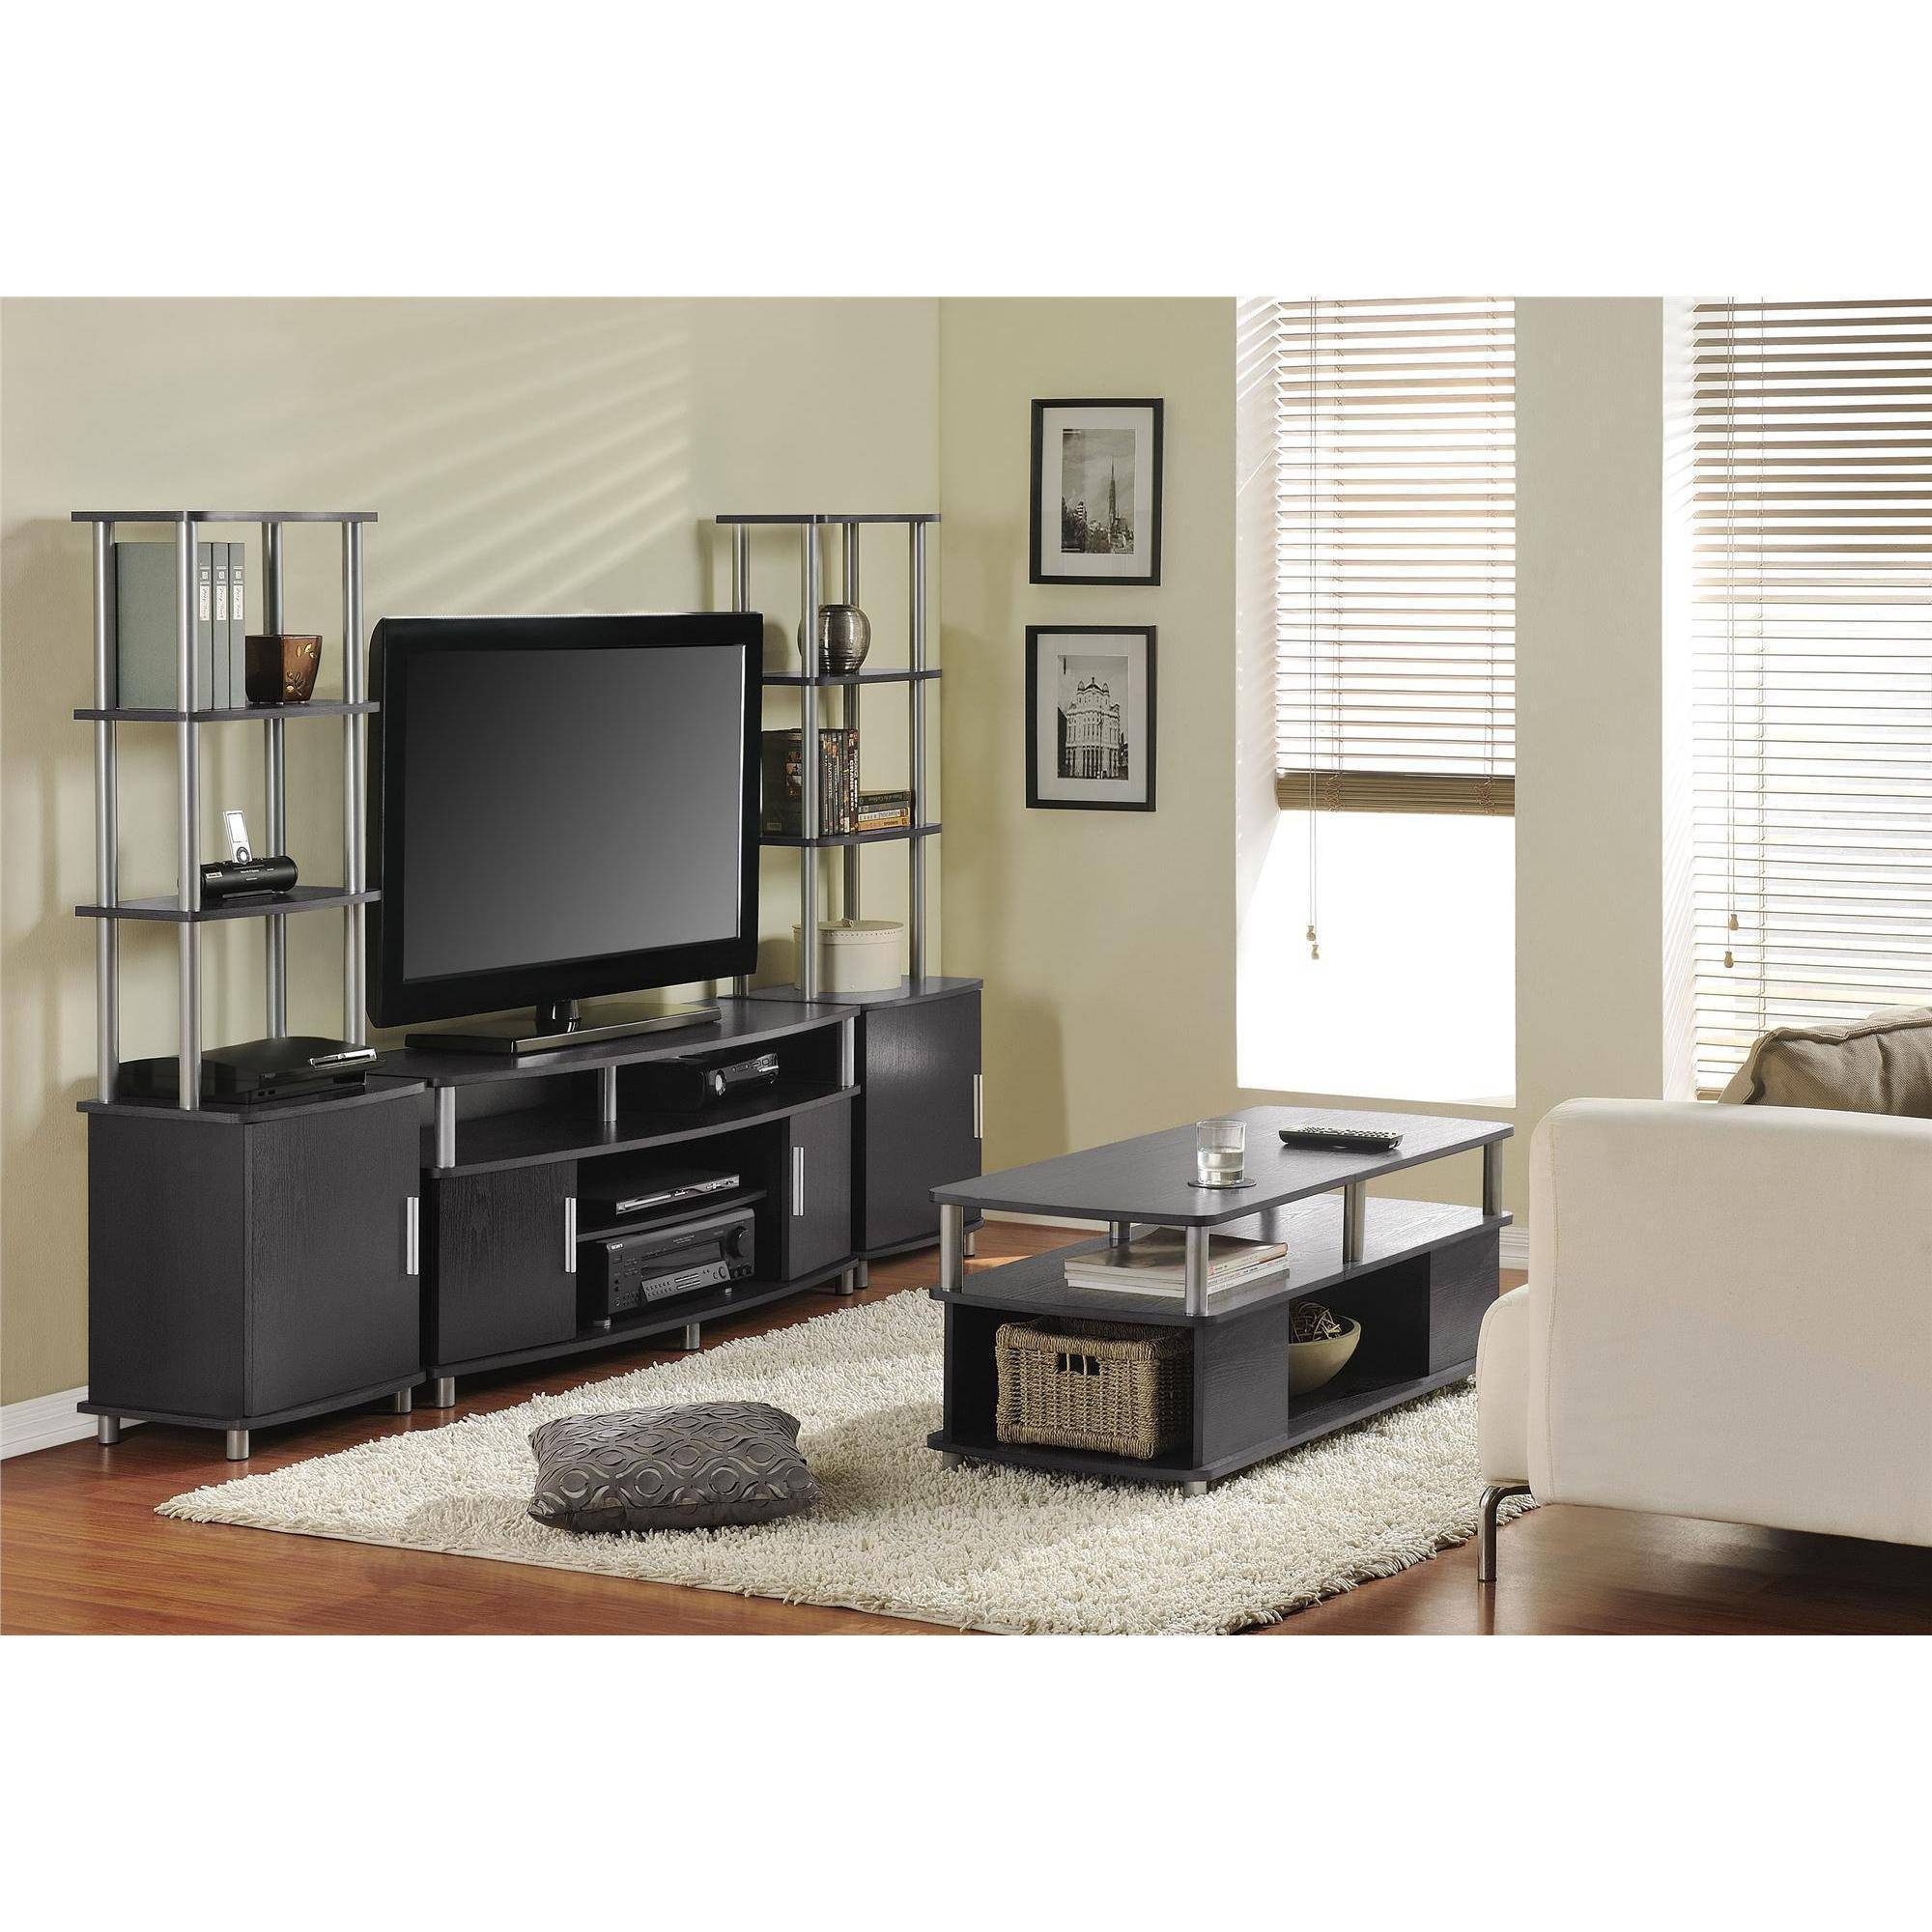 Ameriwood Home Carson Coffee Table, Espresso/silver - Walmart regarding Coffee Tables and Tv Stands Matching (Image 3 of 30)